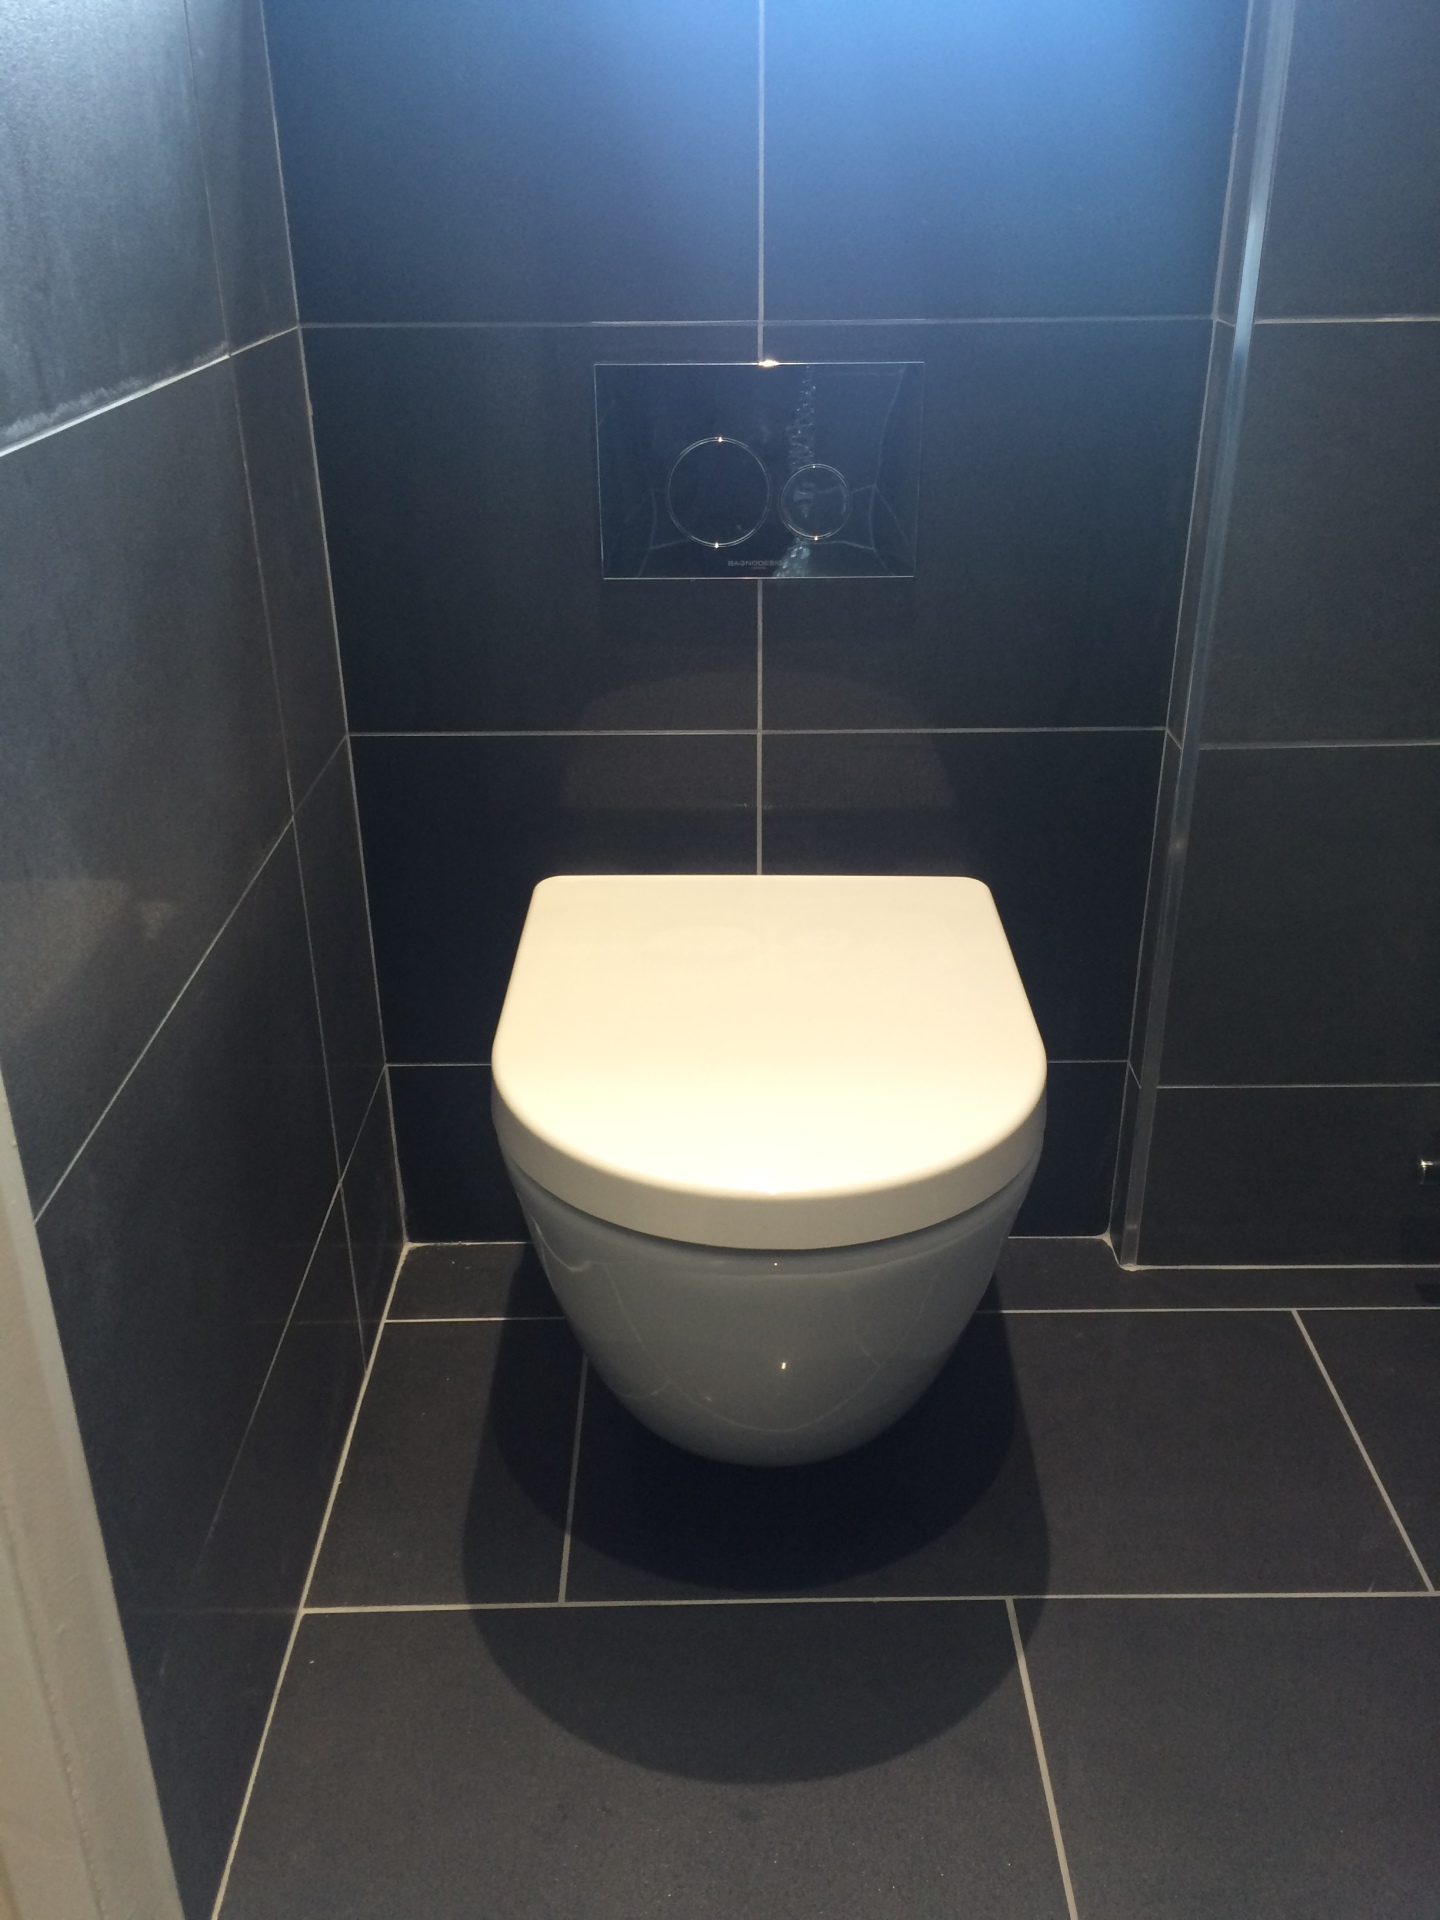 Wetroom in Uckfield